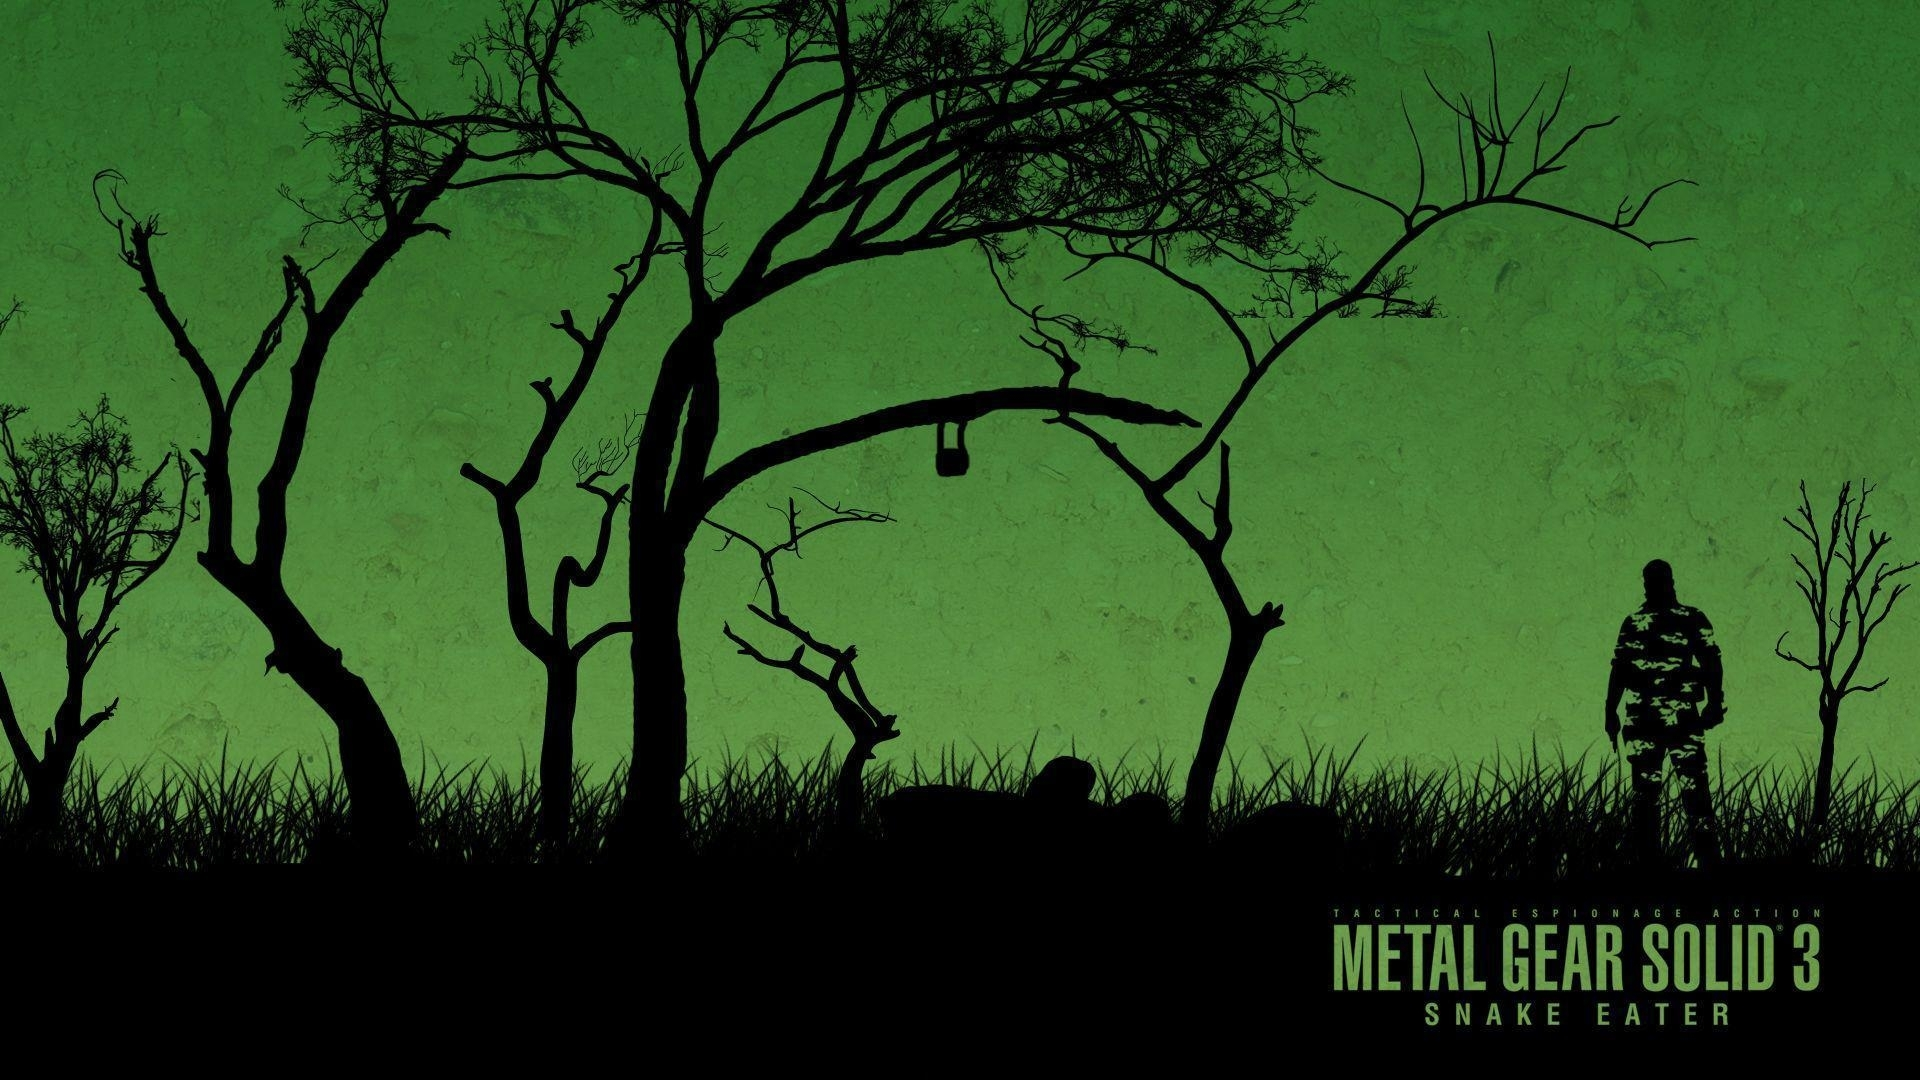 metal gear solid 3 wallpapers - wallpaper cave